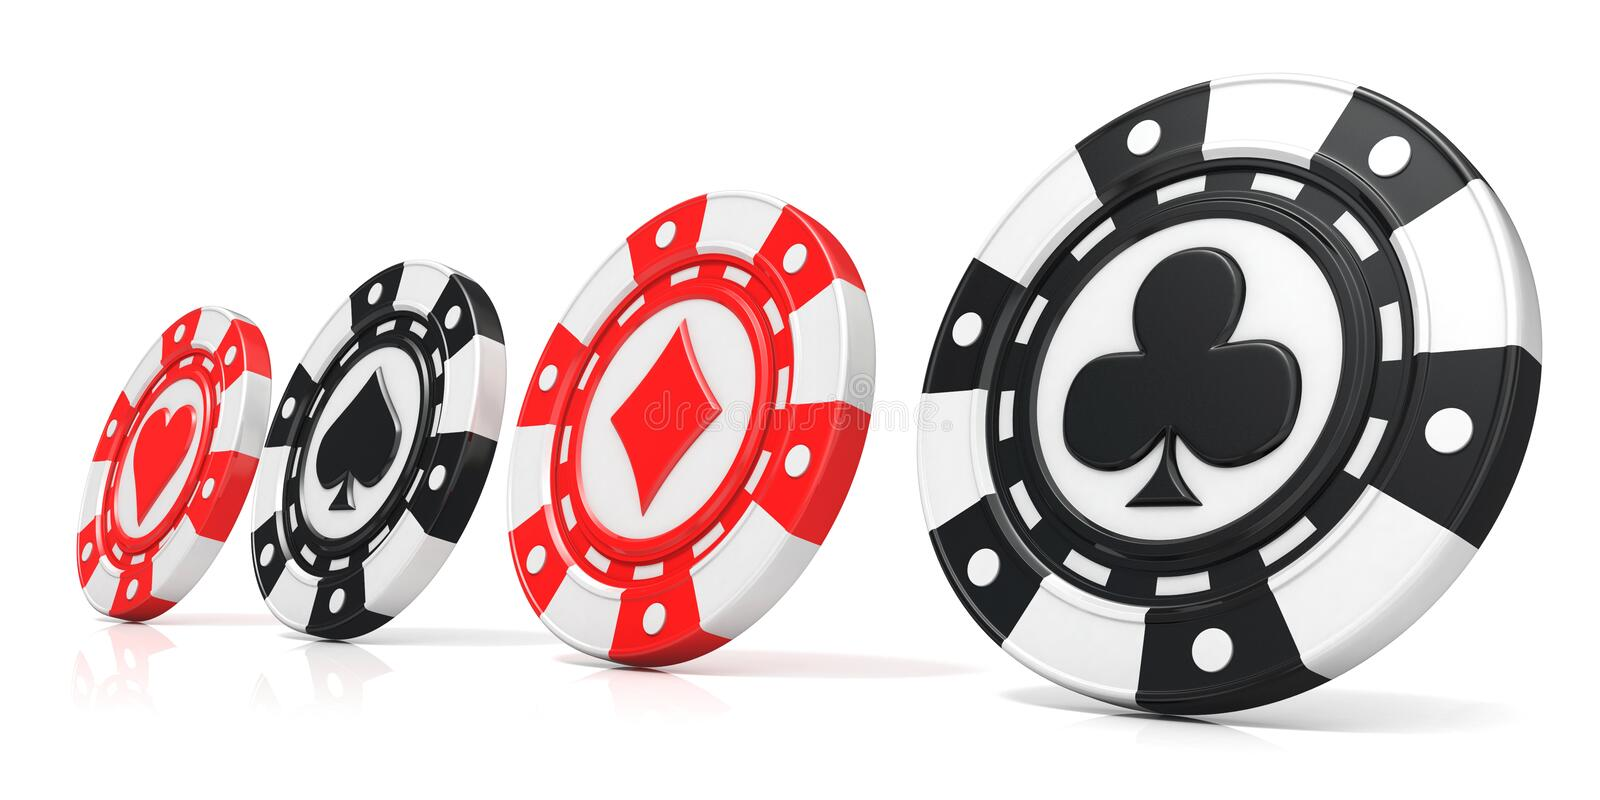 Casino chips with spade, heart diamond and club on it. 3D render. Illustration on white background vector illustration